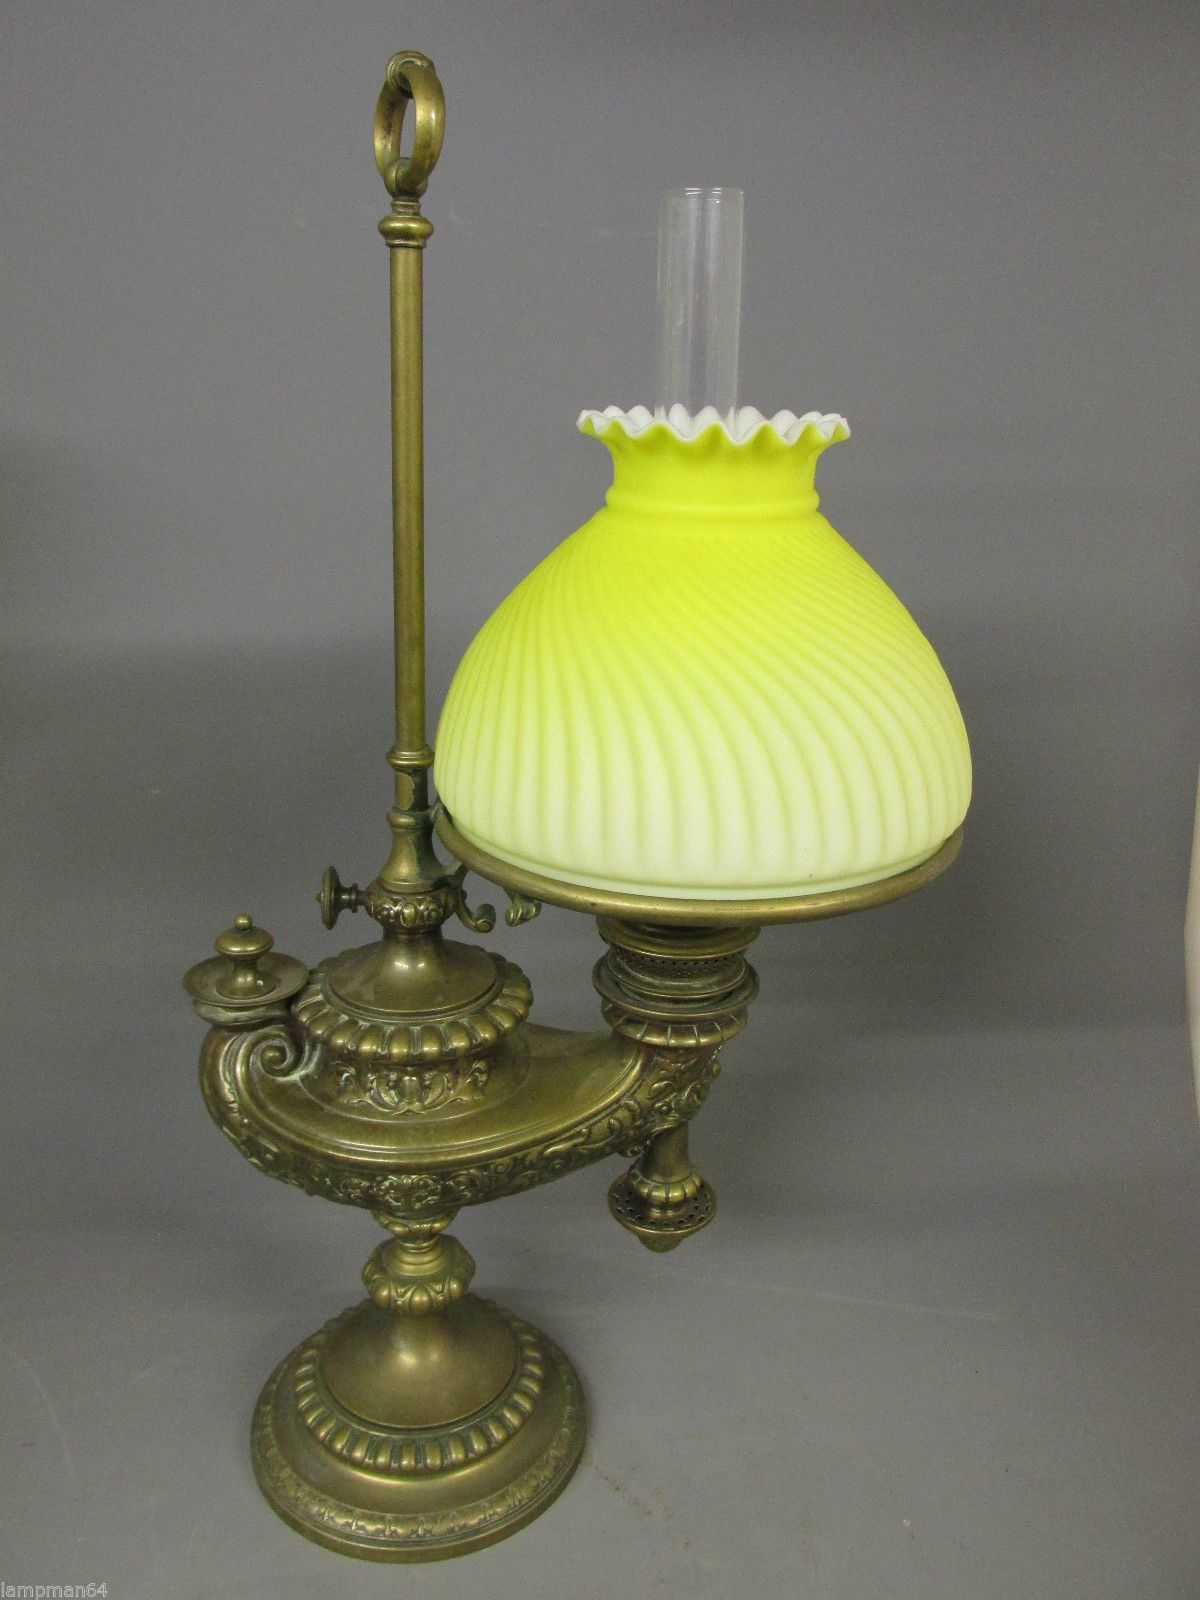 Wild wessel harvard student oil lamp complete with satin glass wild wessel harvard student oil lamp complete with satin glass shade mozeypictures Choice Image